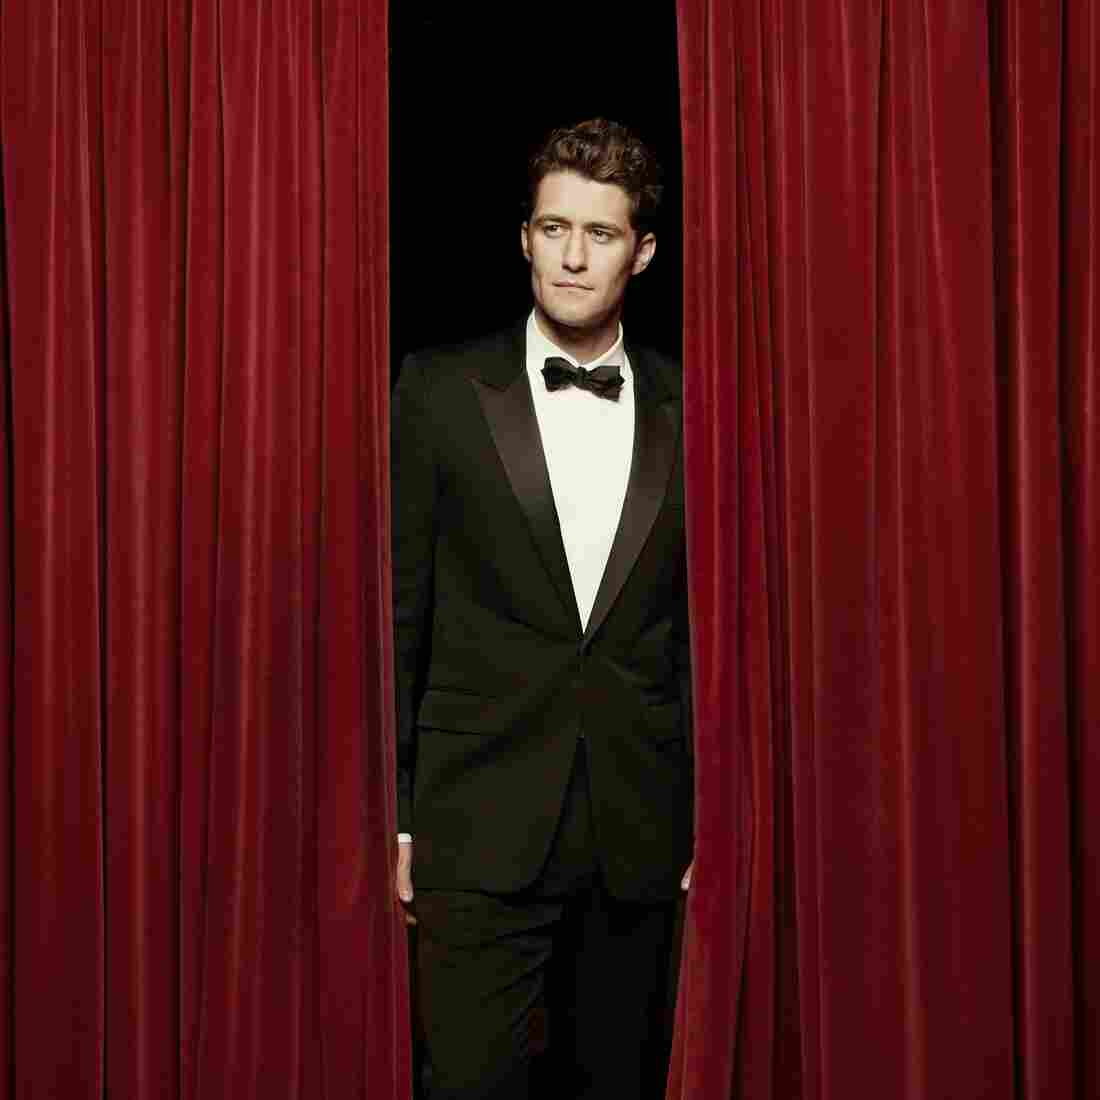 Matthew Morrison's musical life didn't start on TV; the Glee star is a Tony-nominated stage actor. Where It All Began is his second album of show tunes and standards.